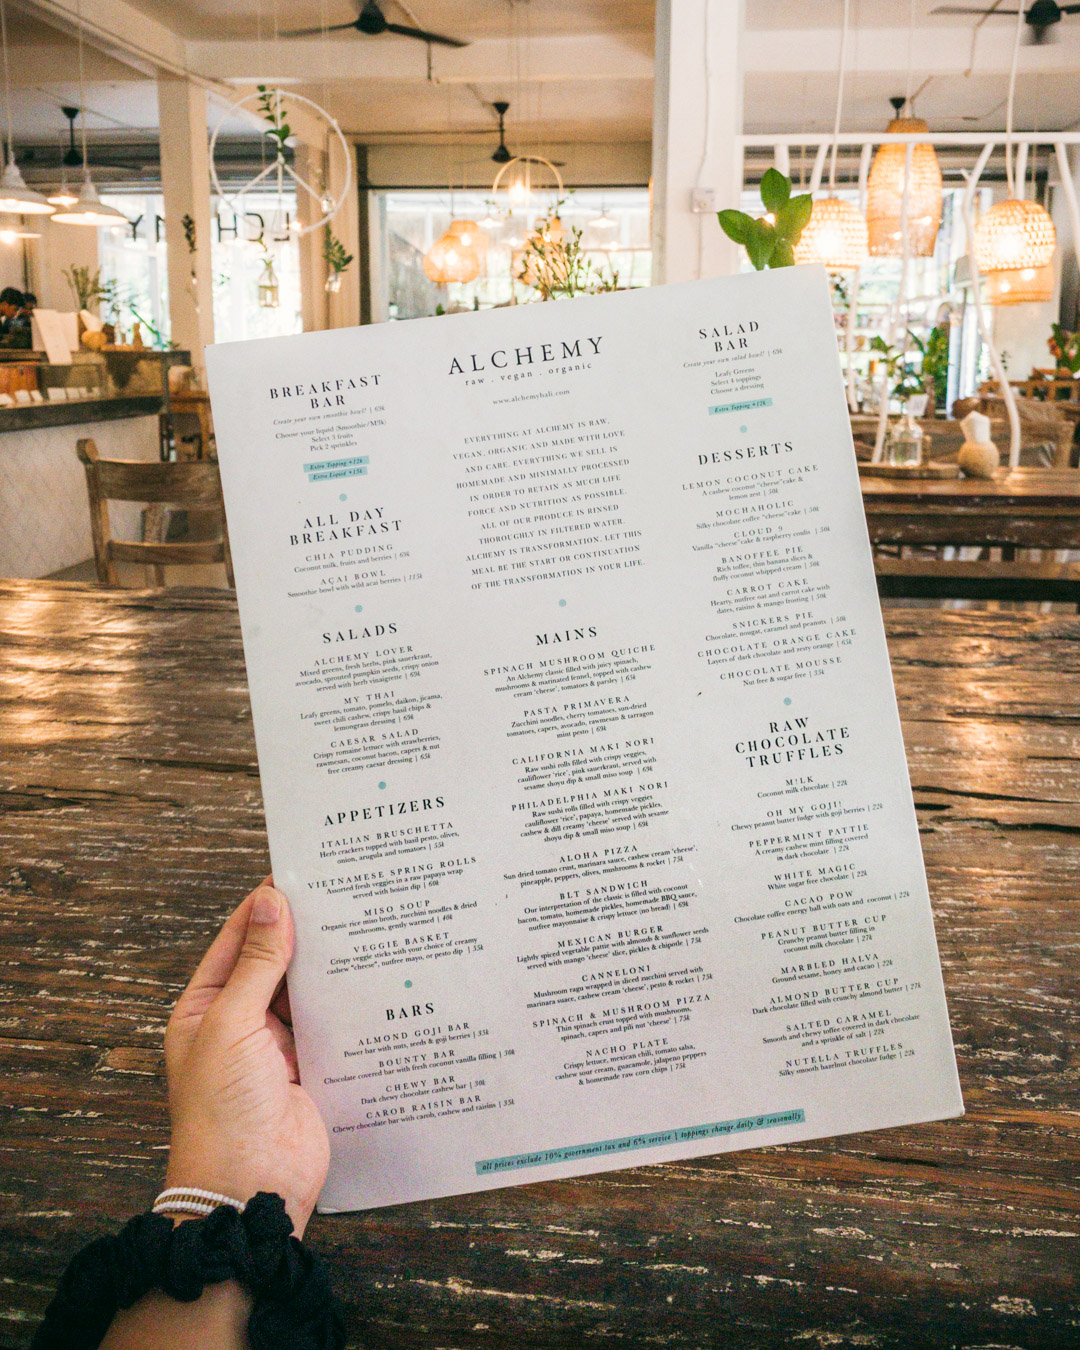 Alchemy's menu is full of healthy, raw vegan options